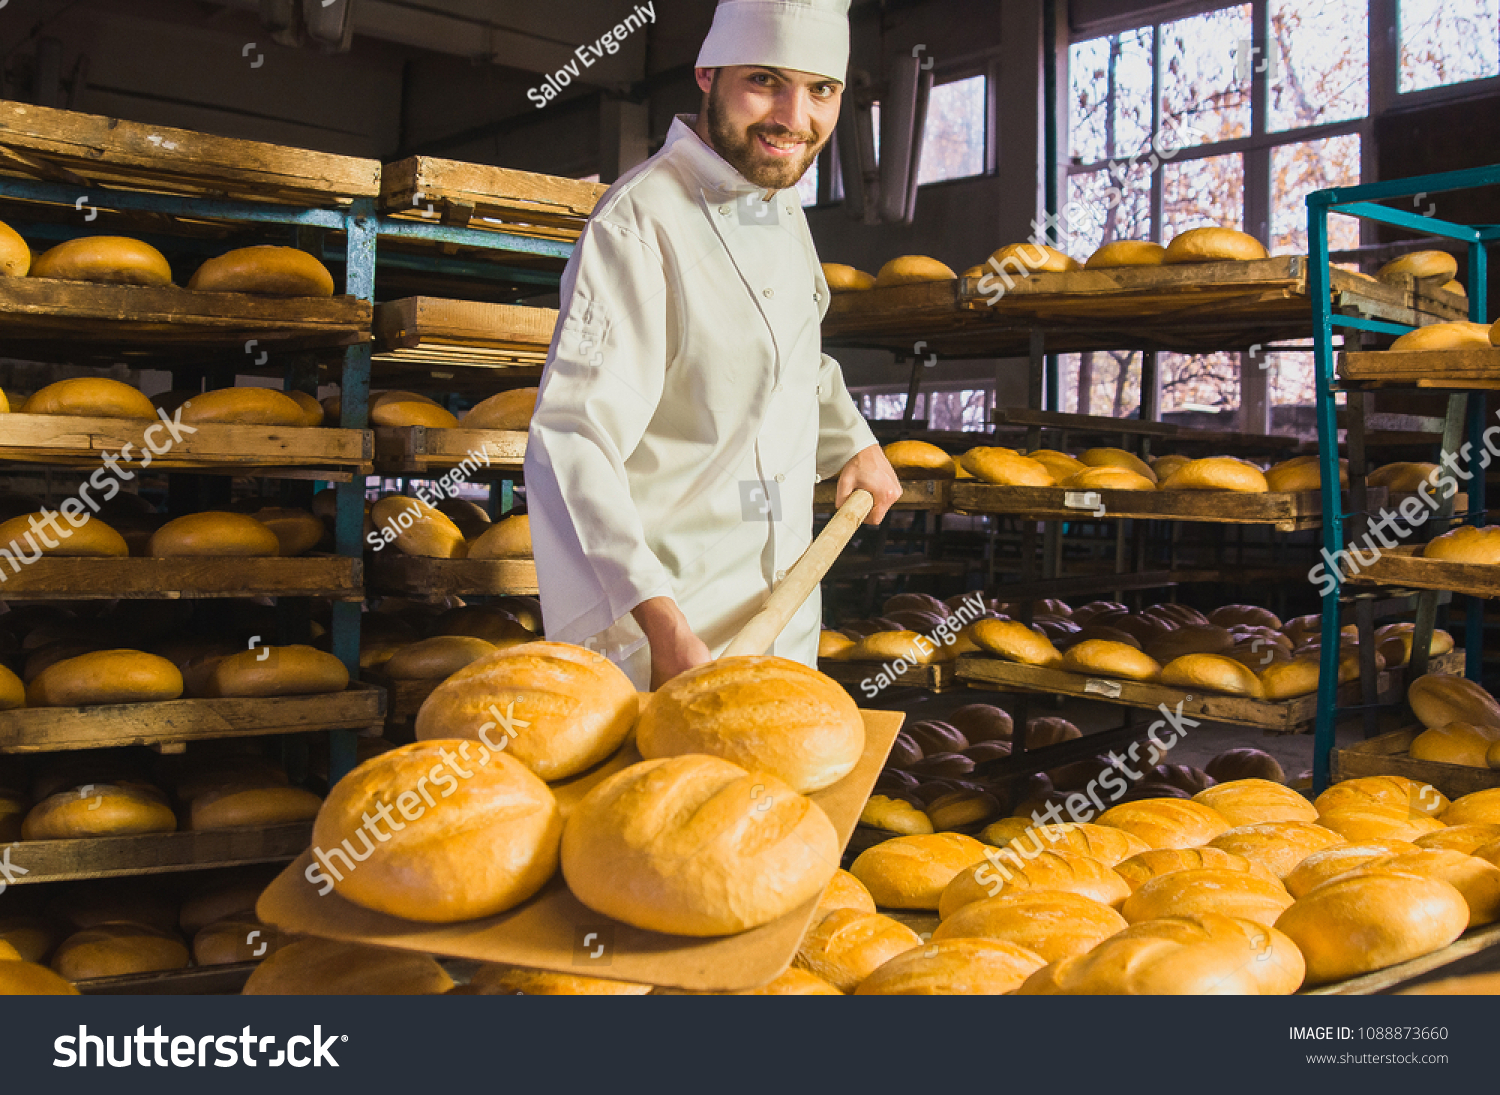 Baker. A young handsome bakery worker on the background of bread, takes bread from a stove with a wooden shovel. Industrial production of bakery products. a man in the baker's special clothing. Bakery #1088873660